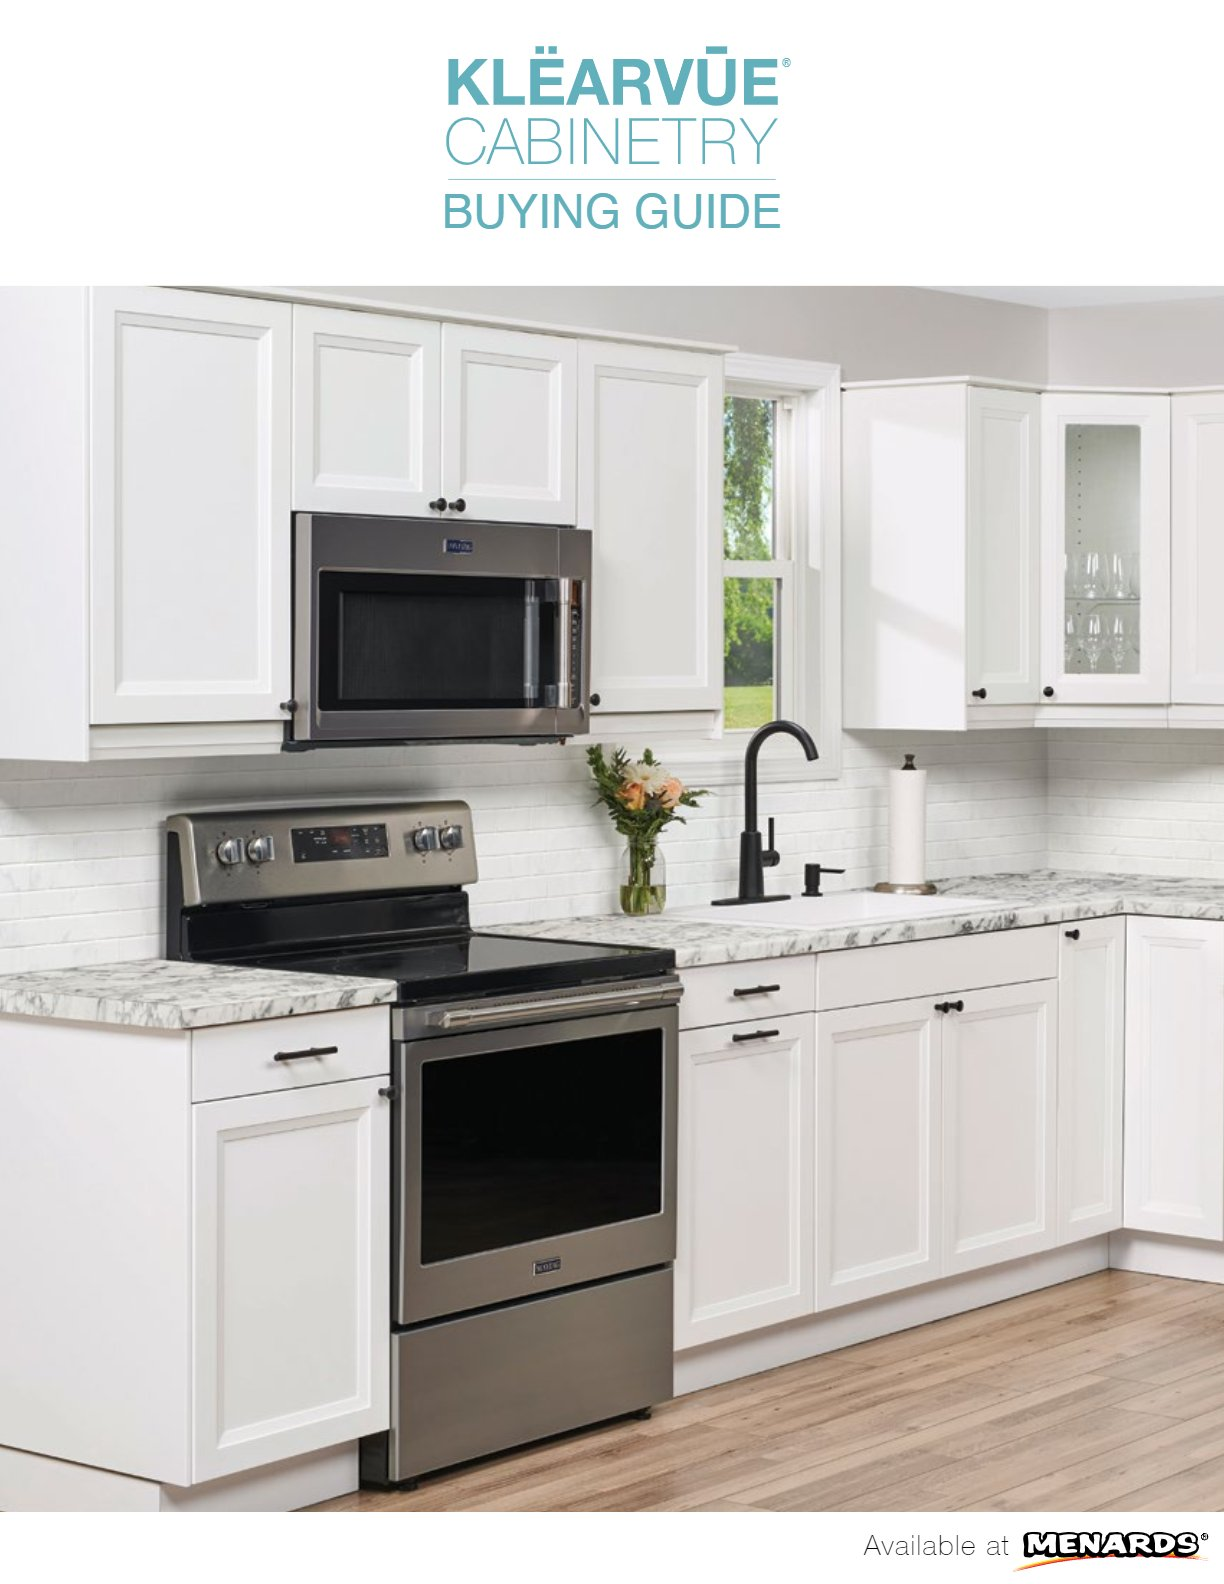 Kitchen Buying Guide KlËarvŪe Cabinetry